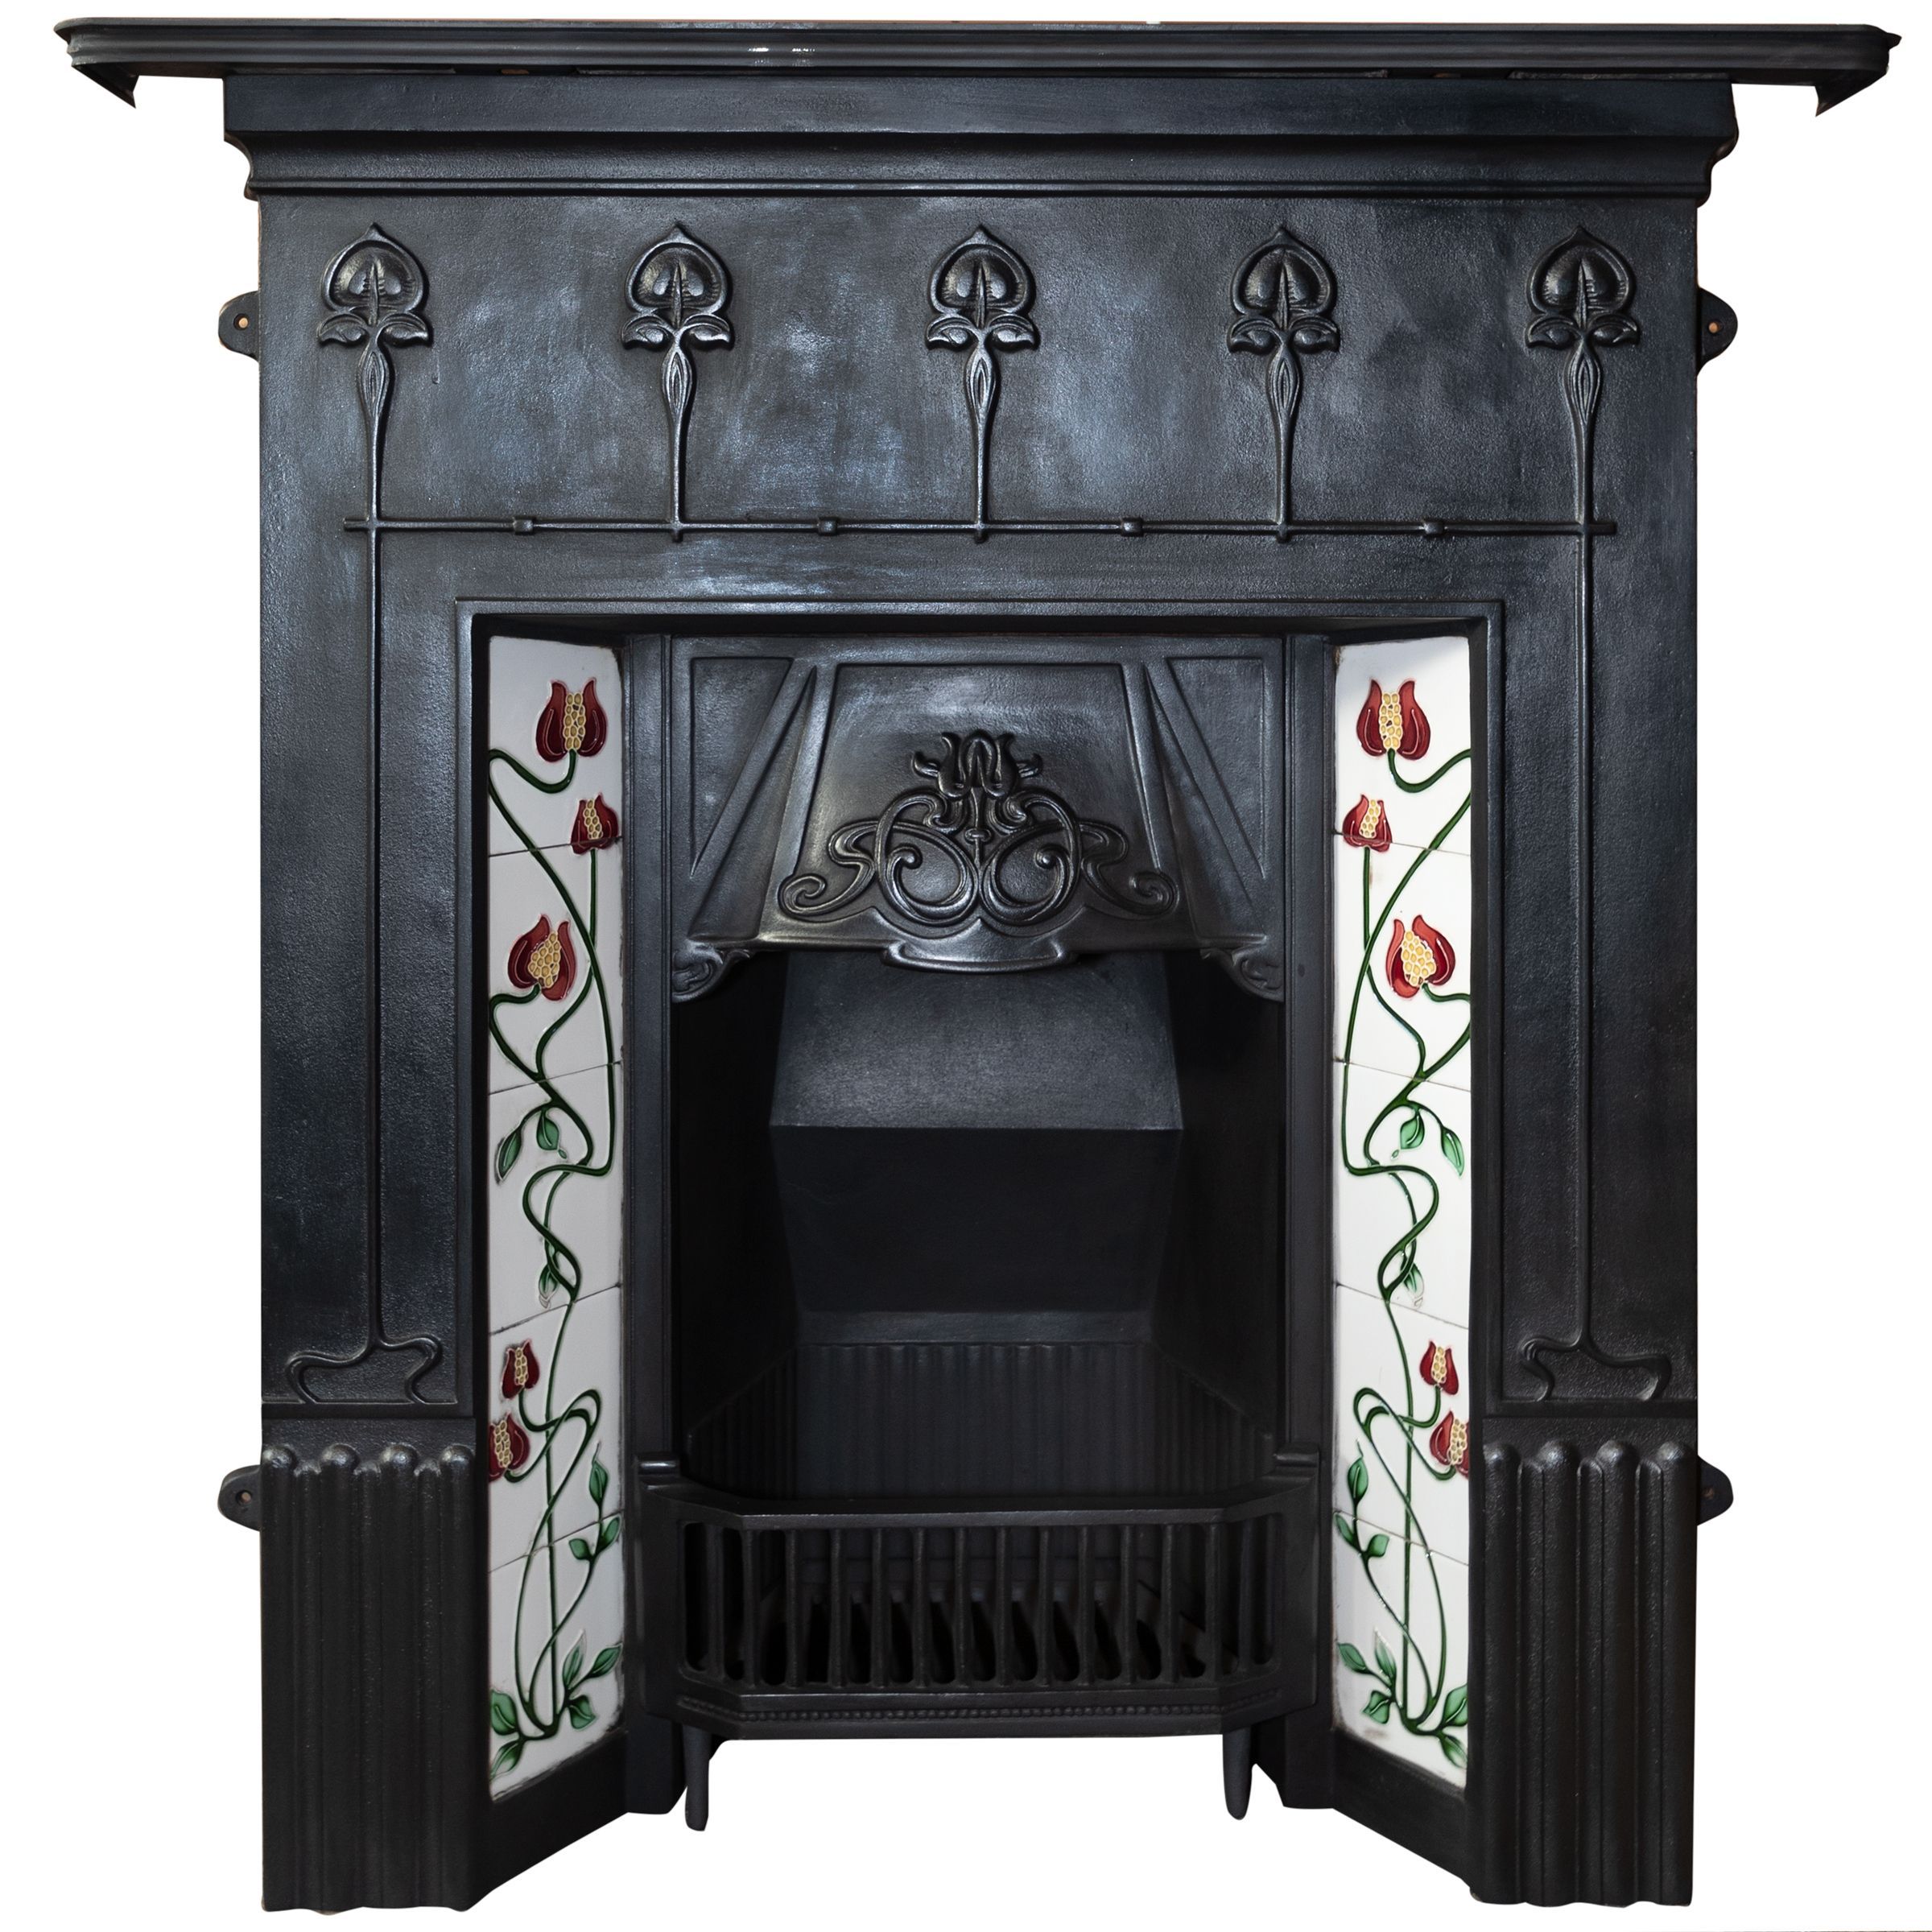 Cast Iron Fireplace Surround New Huge Selection Of Antique Cast Iron Fireplaces Fully